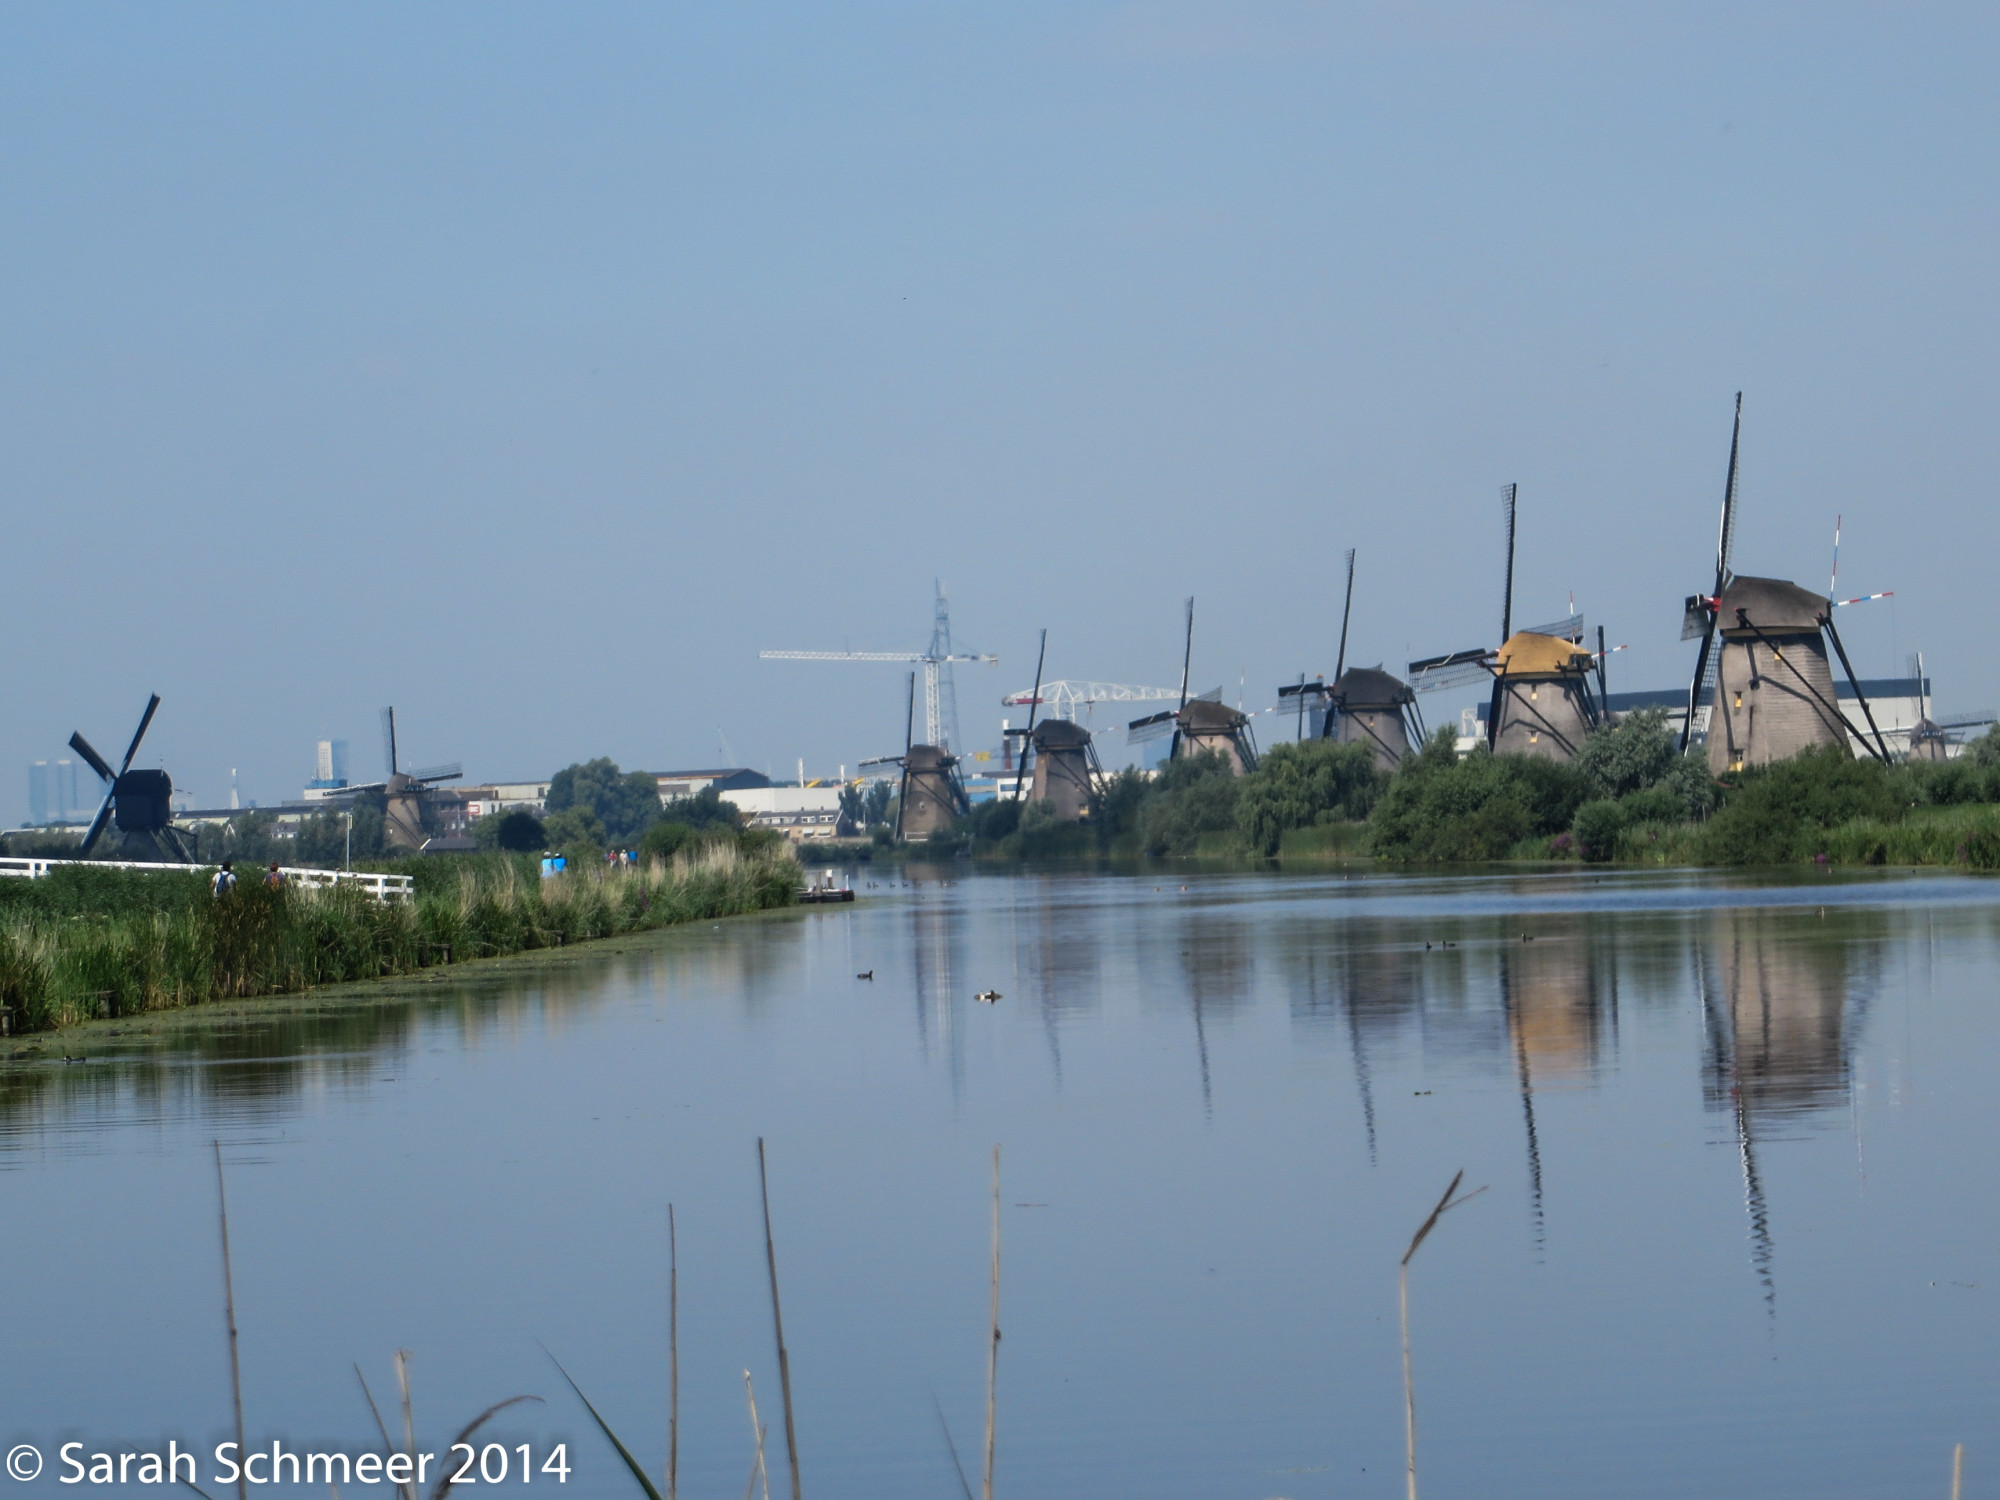 Windmills on Kinderdkij, east of Rotterdam